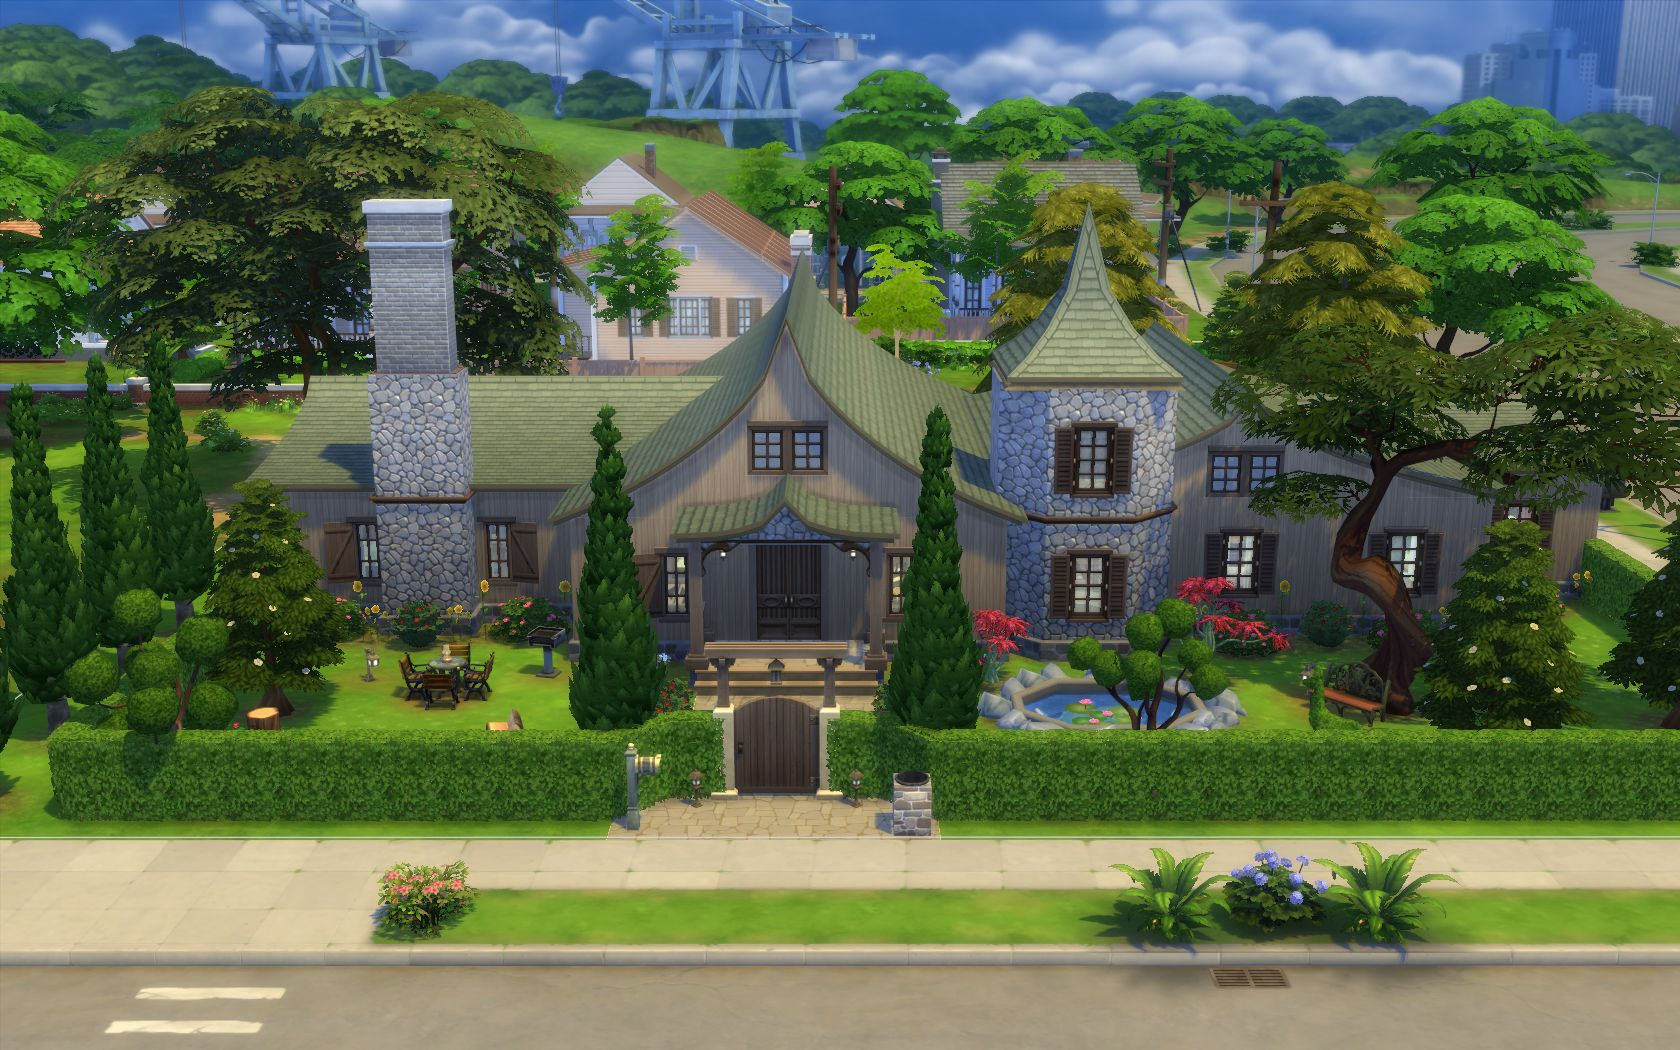 Mod the sims storybook cottage 5br 3ba for Storybook homes prices